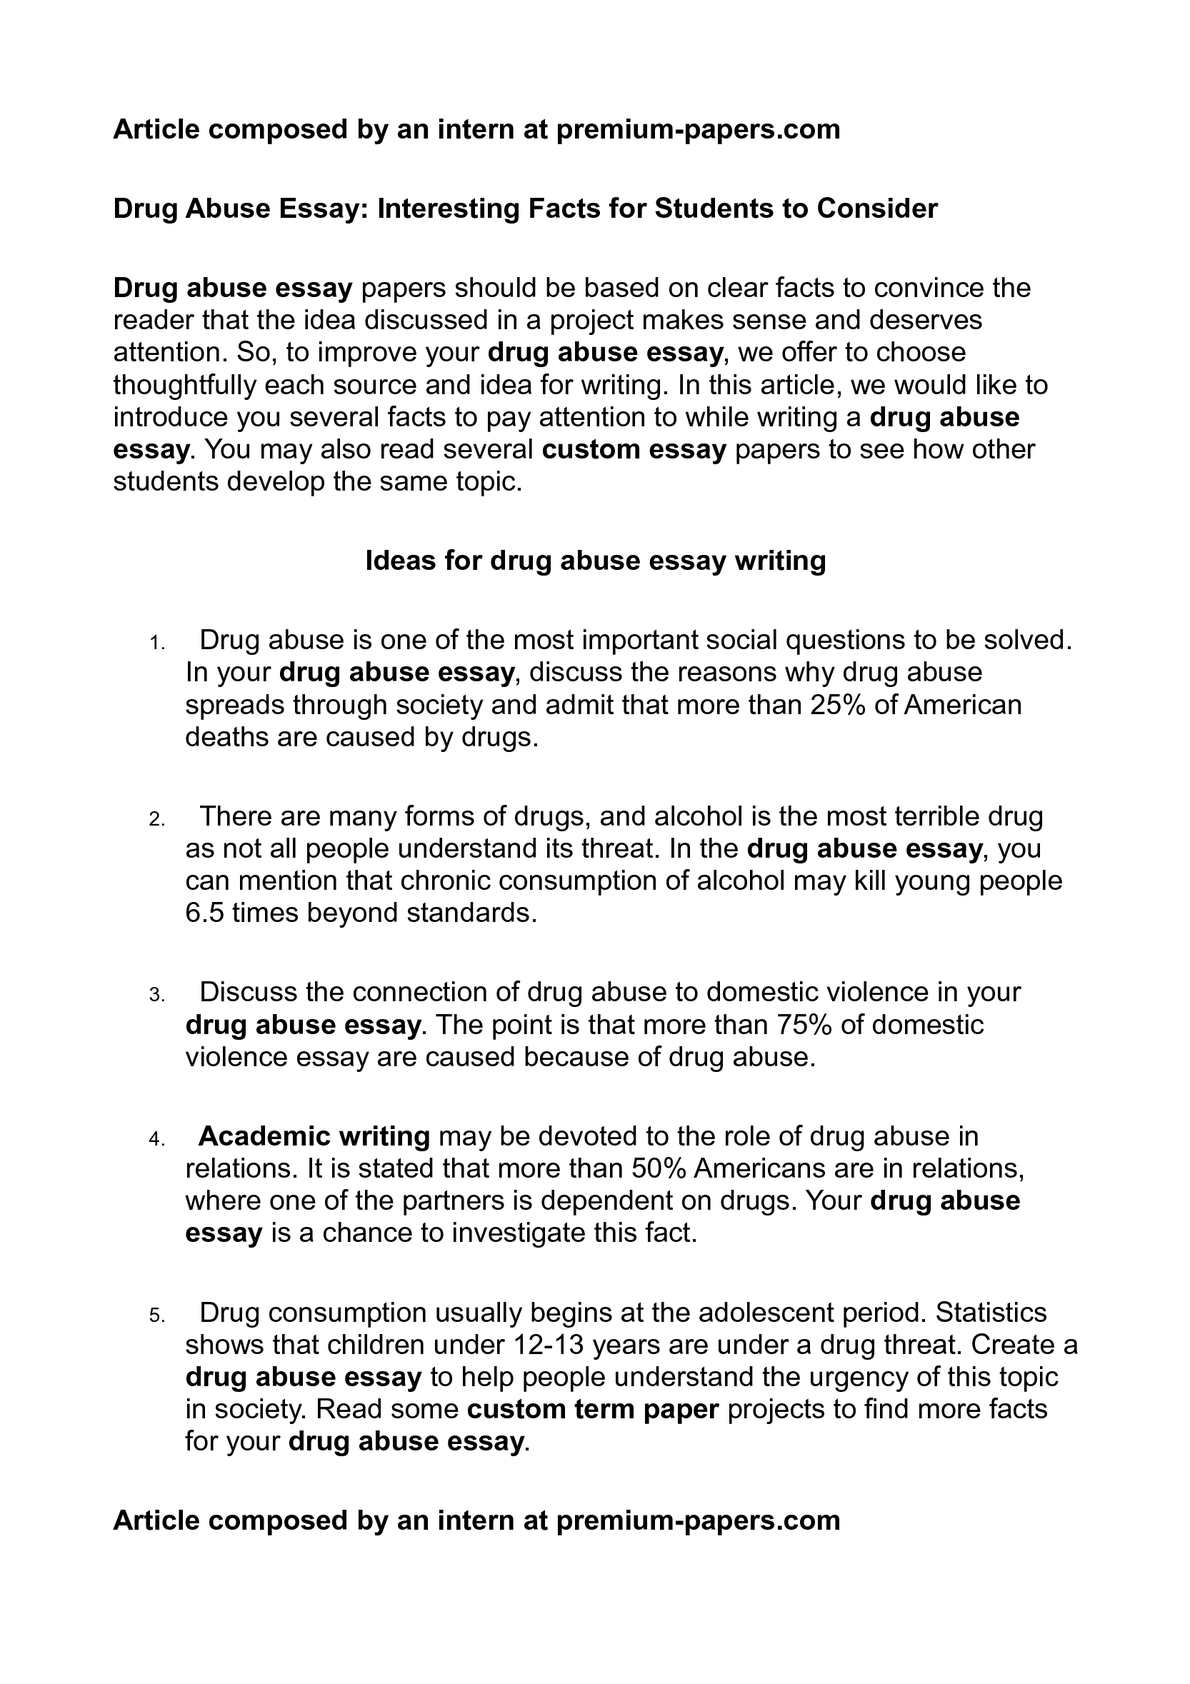 rebellious teenager essay teenage drug abuse essay help my essay  teenage drug abuse essay teen alcohol and drug abuse essays teen alcohol and drug abuse essaysalcohol